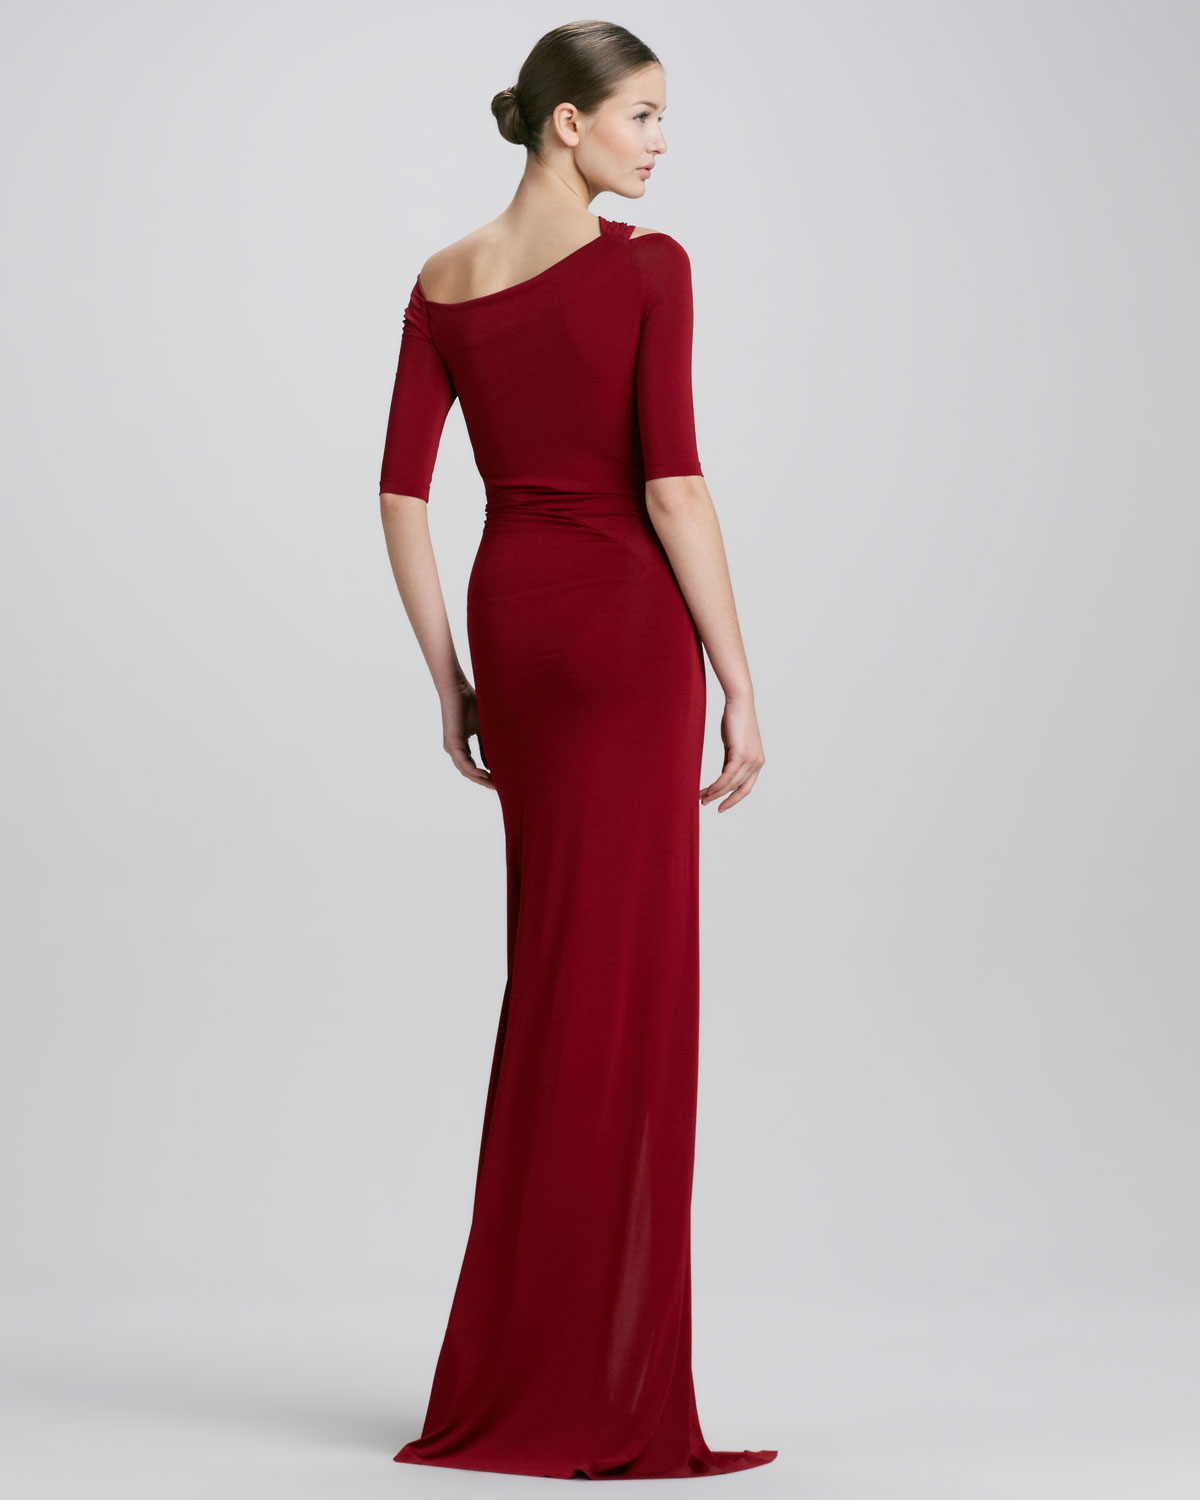 Donna karan evening dresses cocktail dresses 2016 for Donna karan wedding dresses